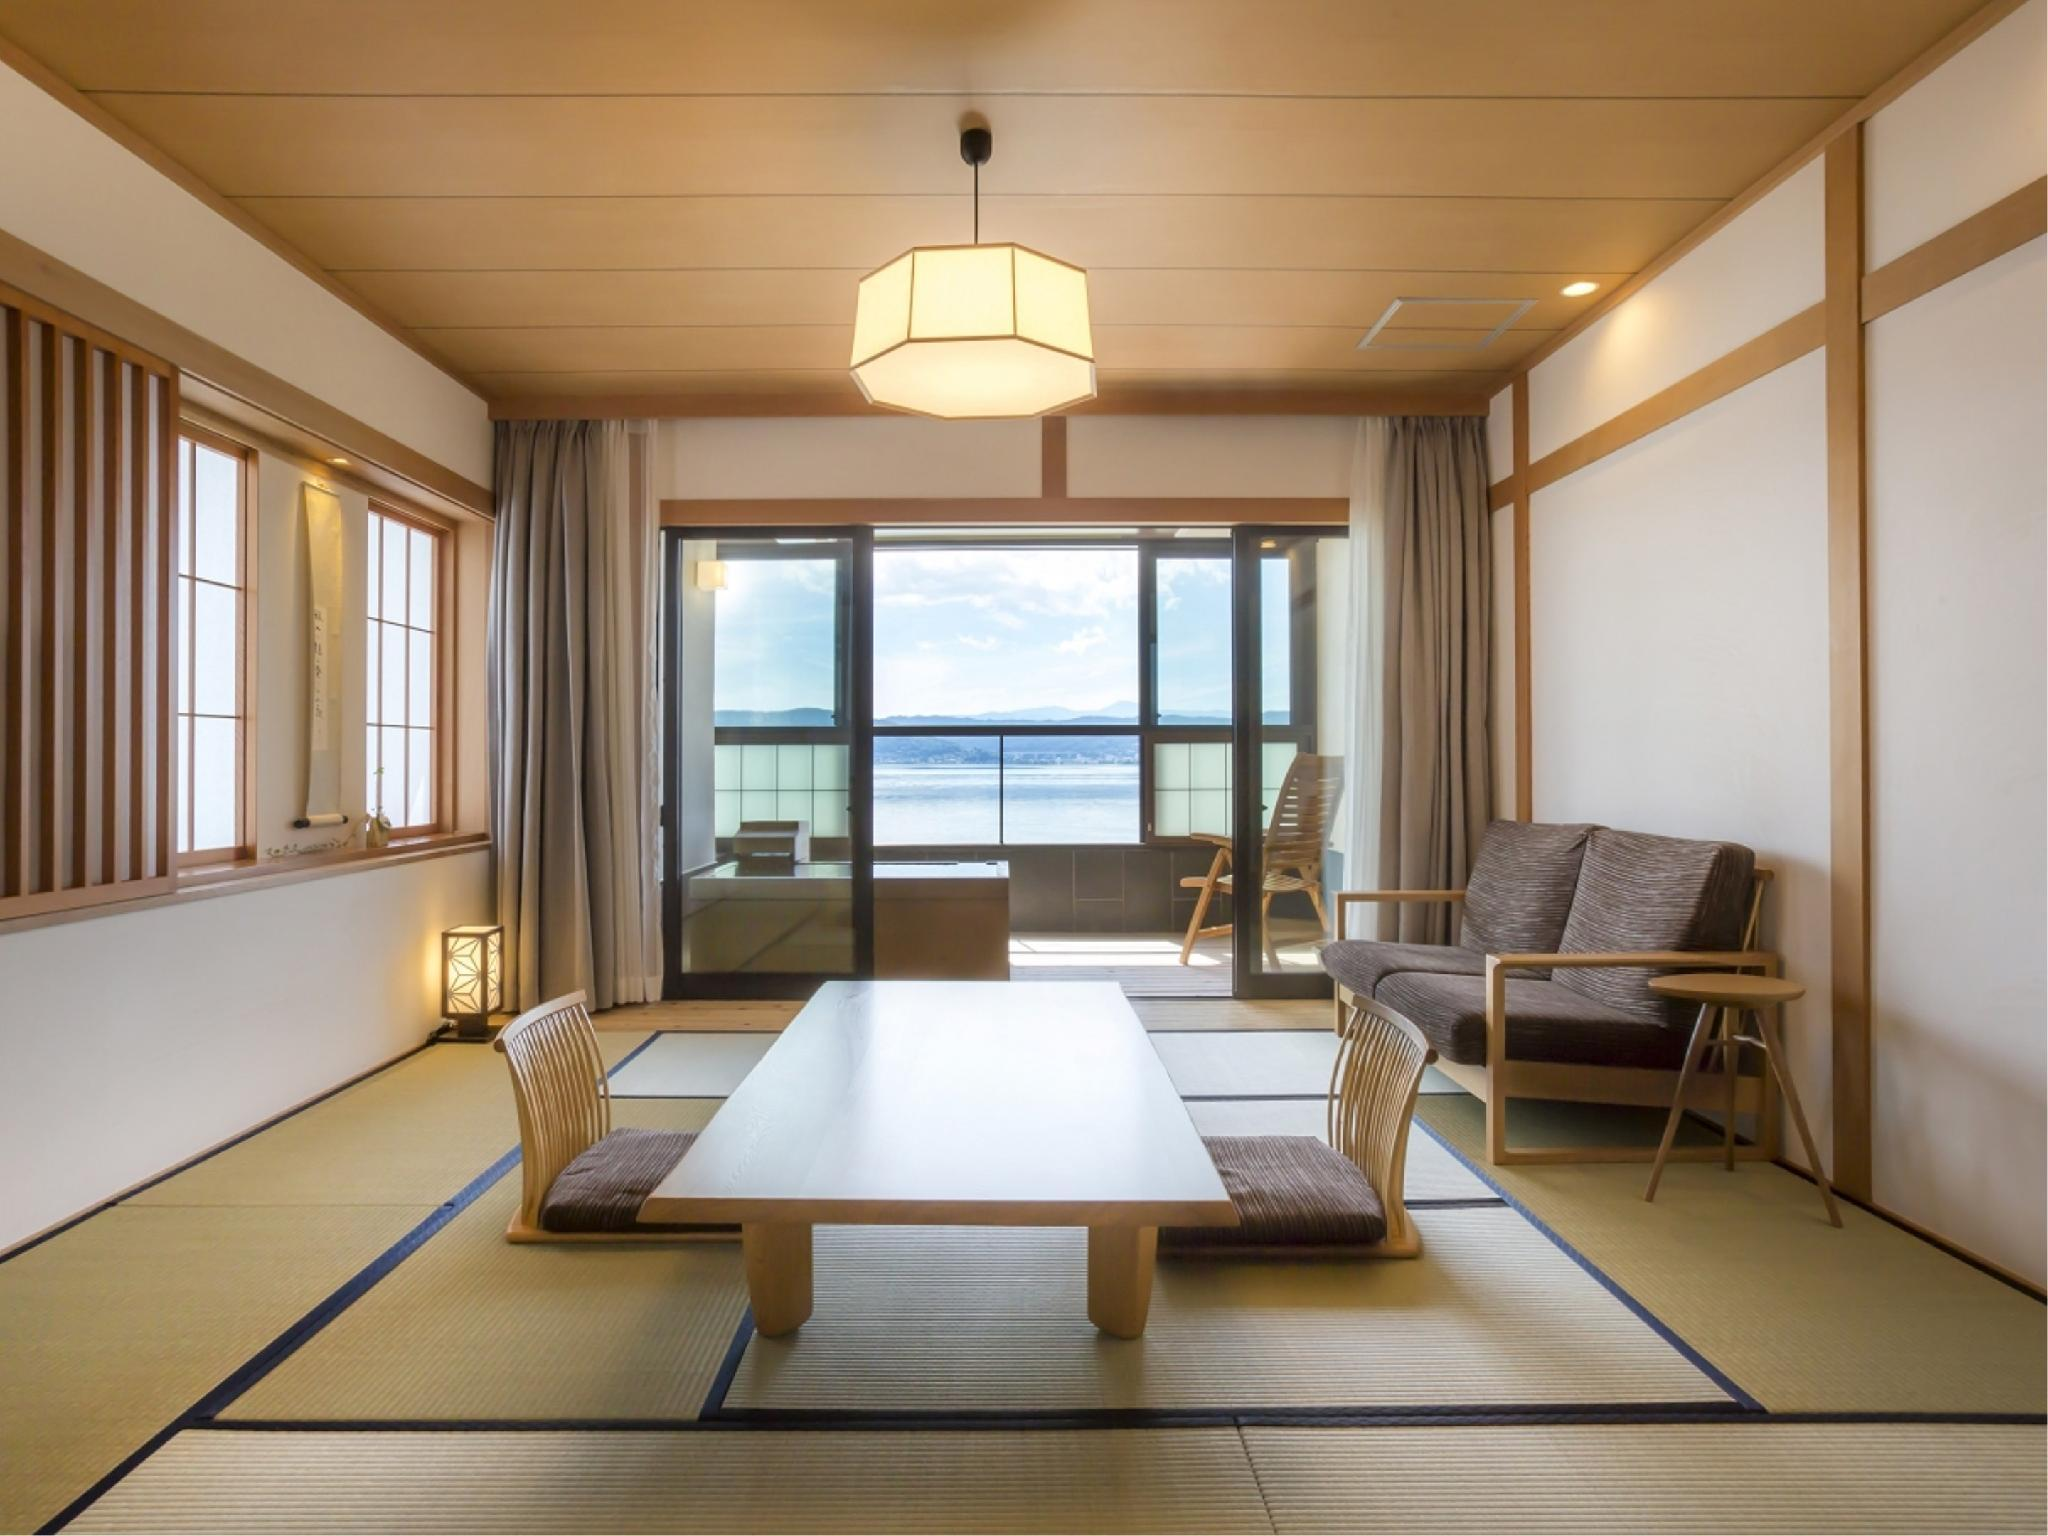 【風露】源泉露天風呂付客室 ワイドタイプ2階 201|75平米 (Wide Japanese/Western-style Room with Open-air Hot Spring Bath (Furo Type, No. 201))